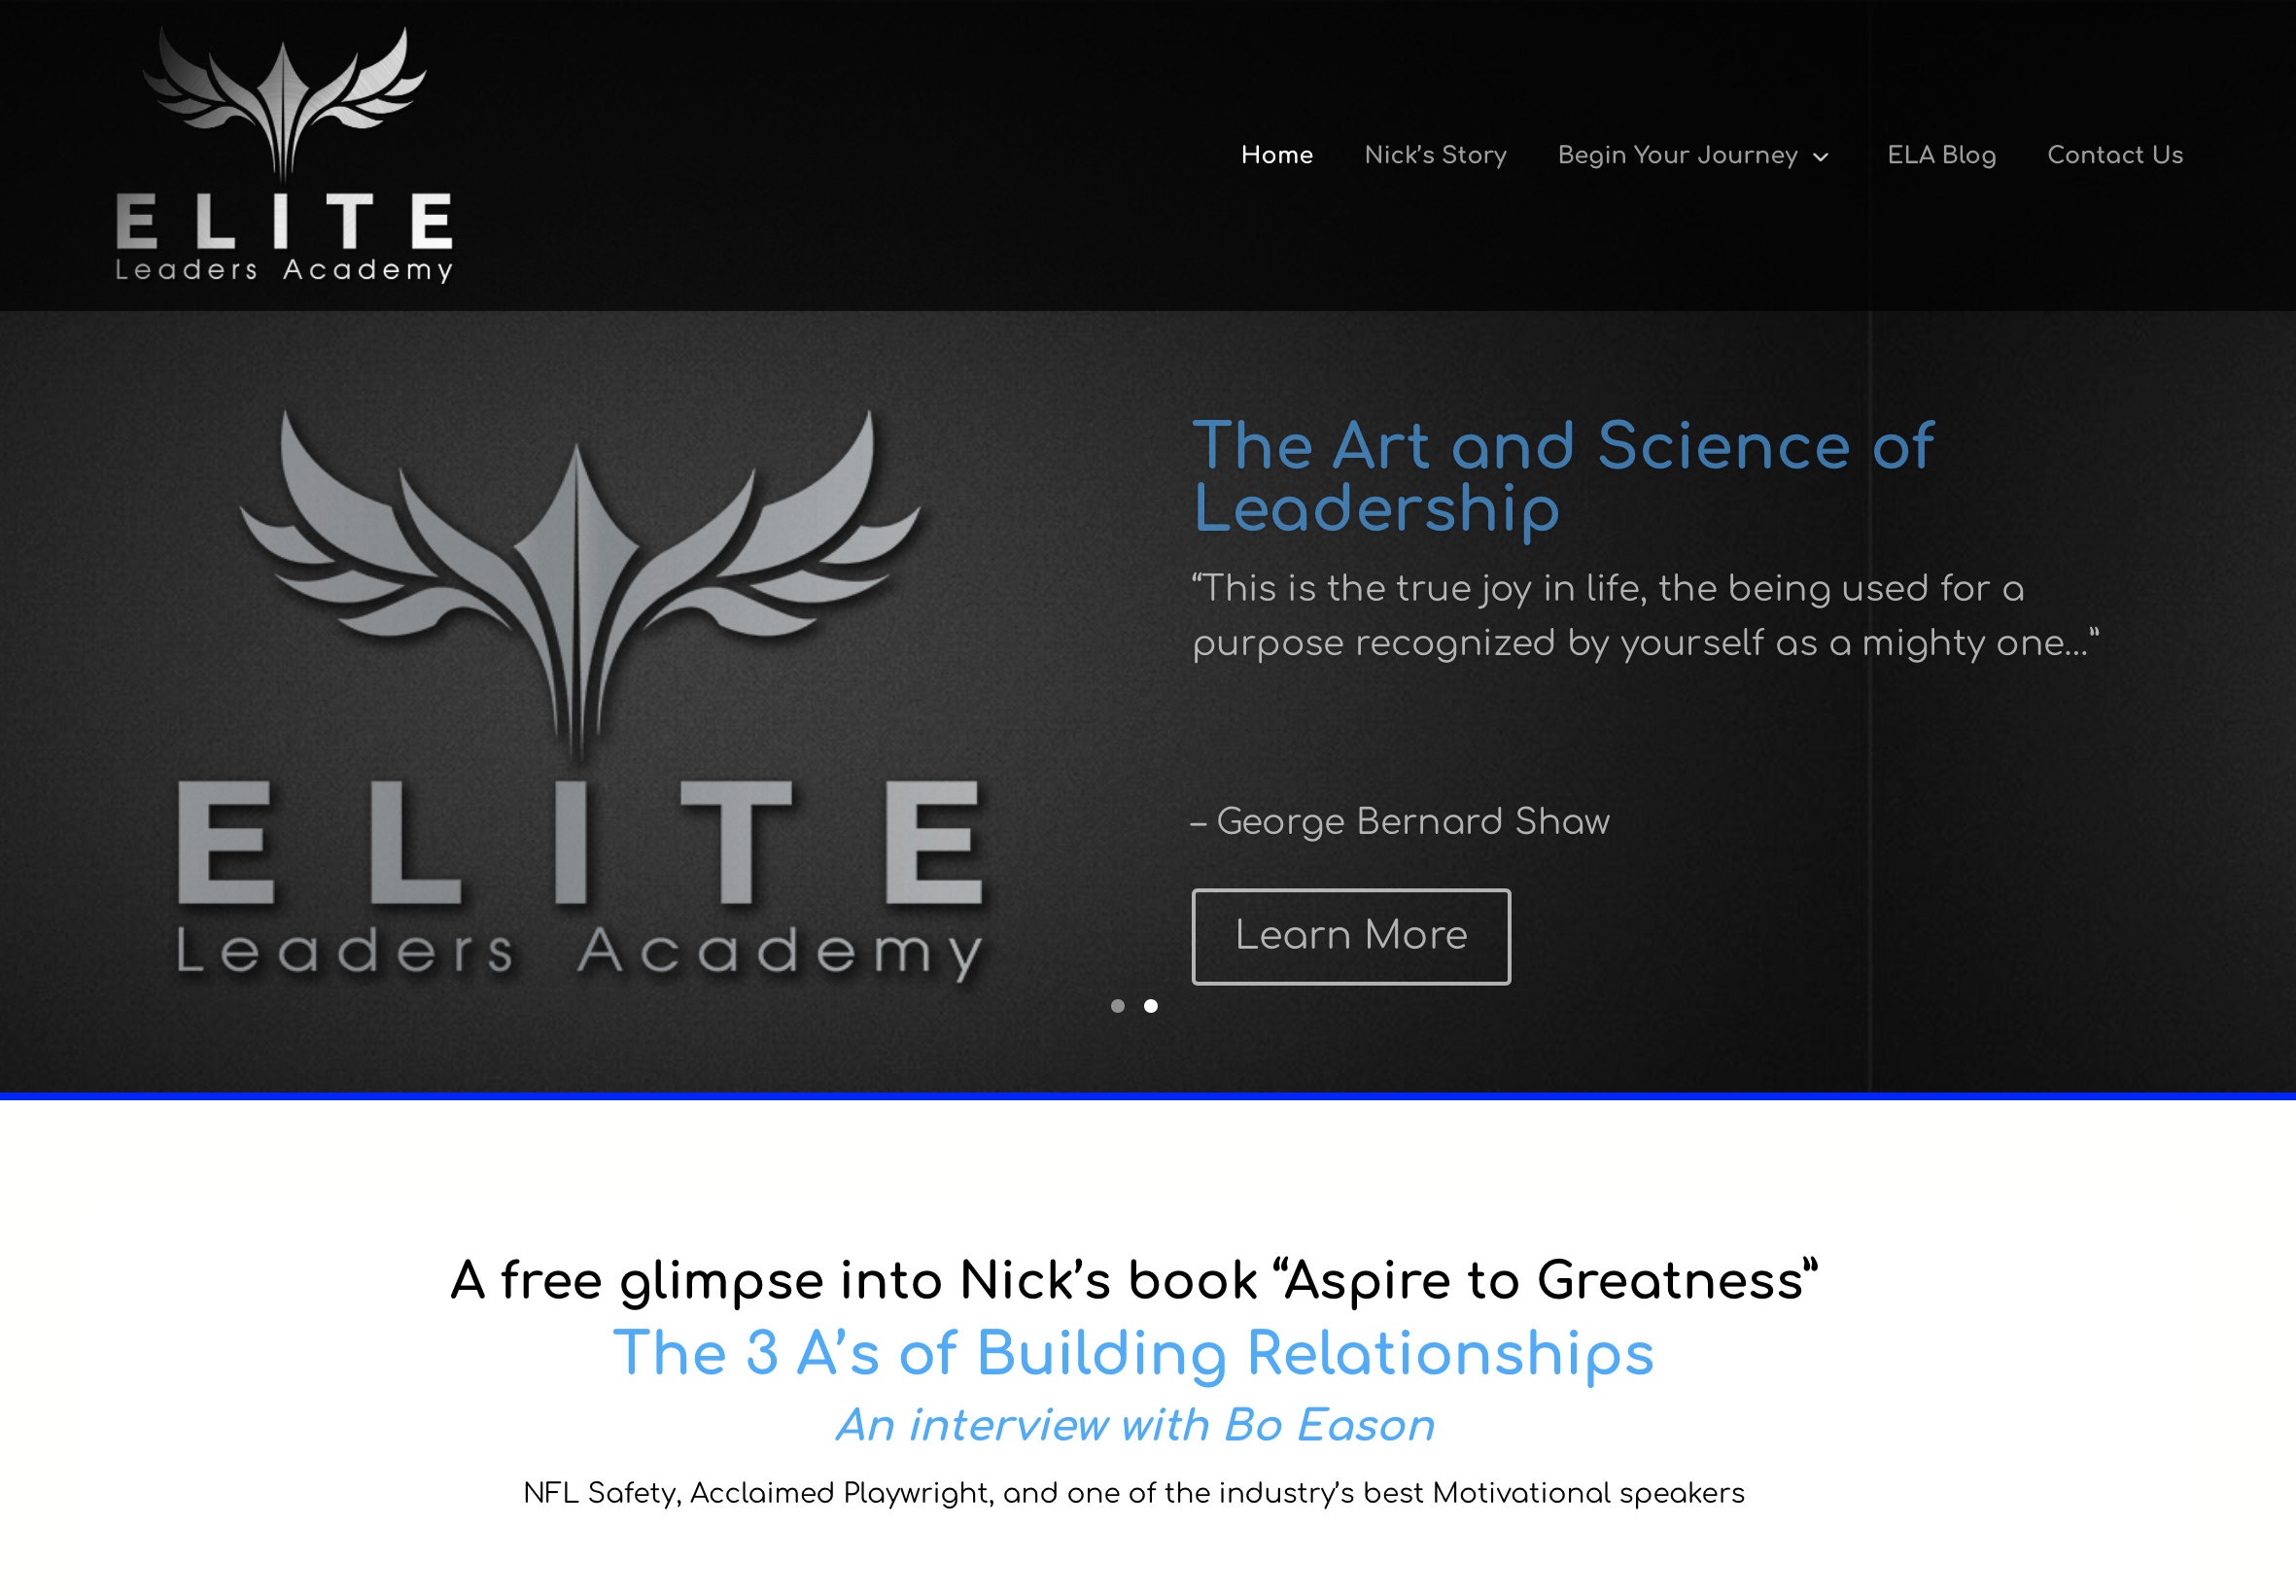 Elite Leaders Academy